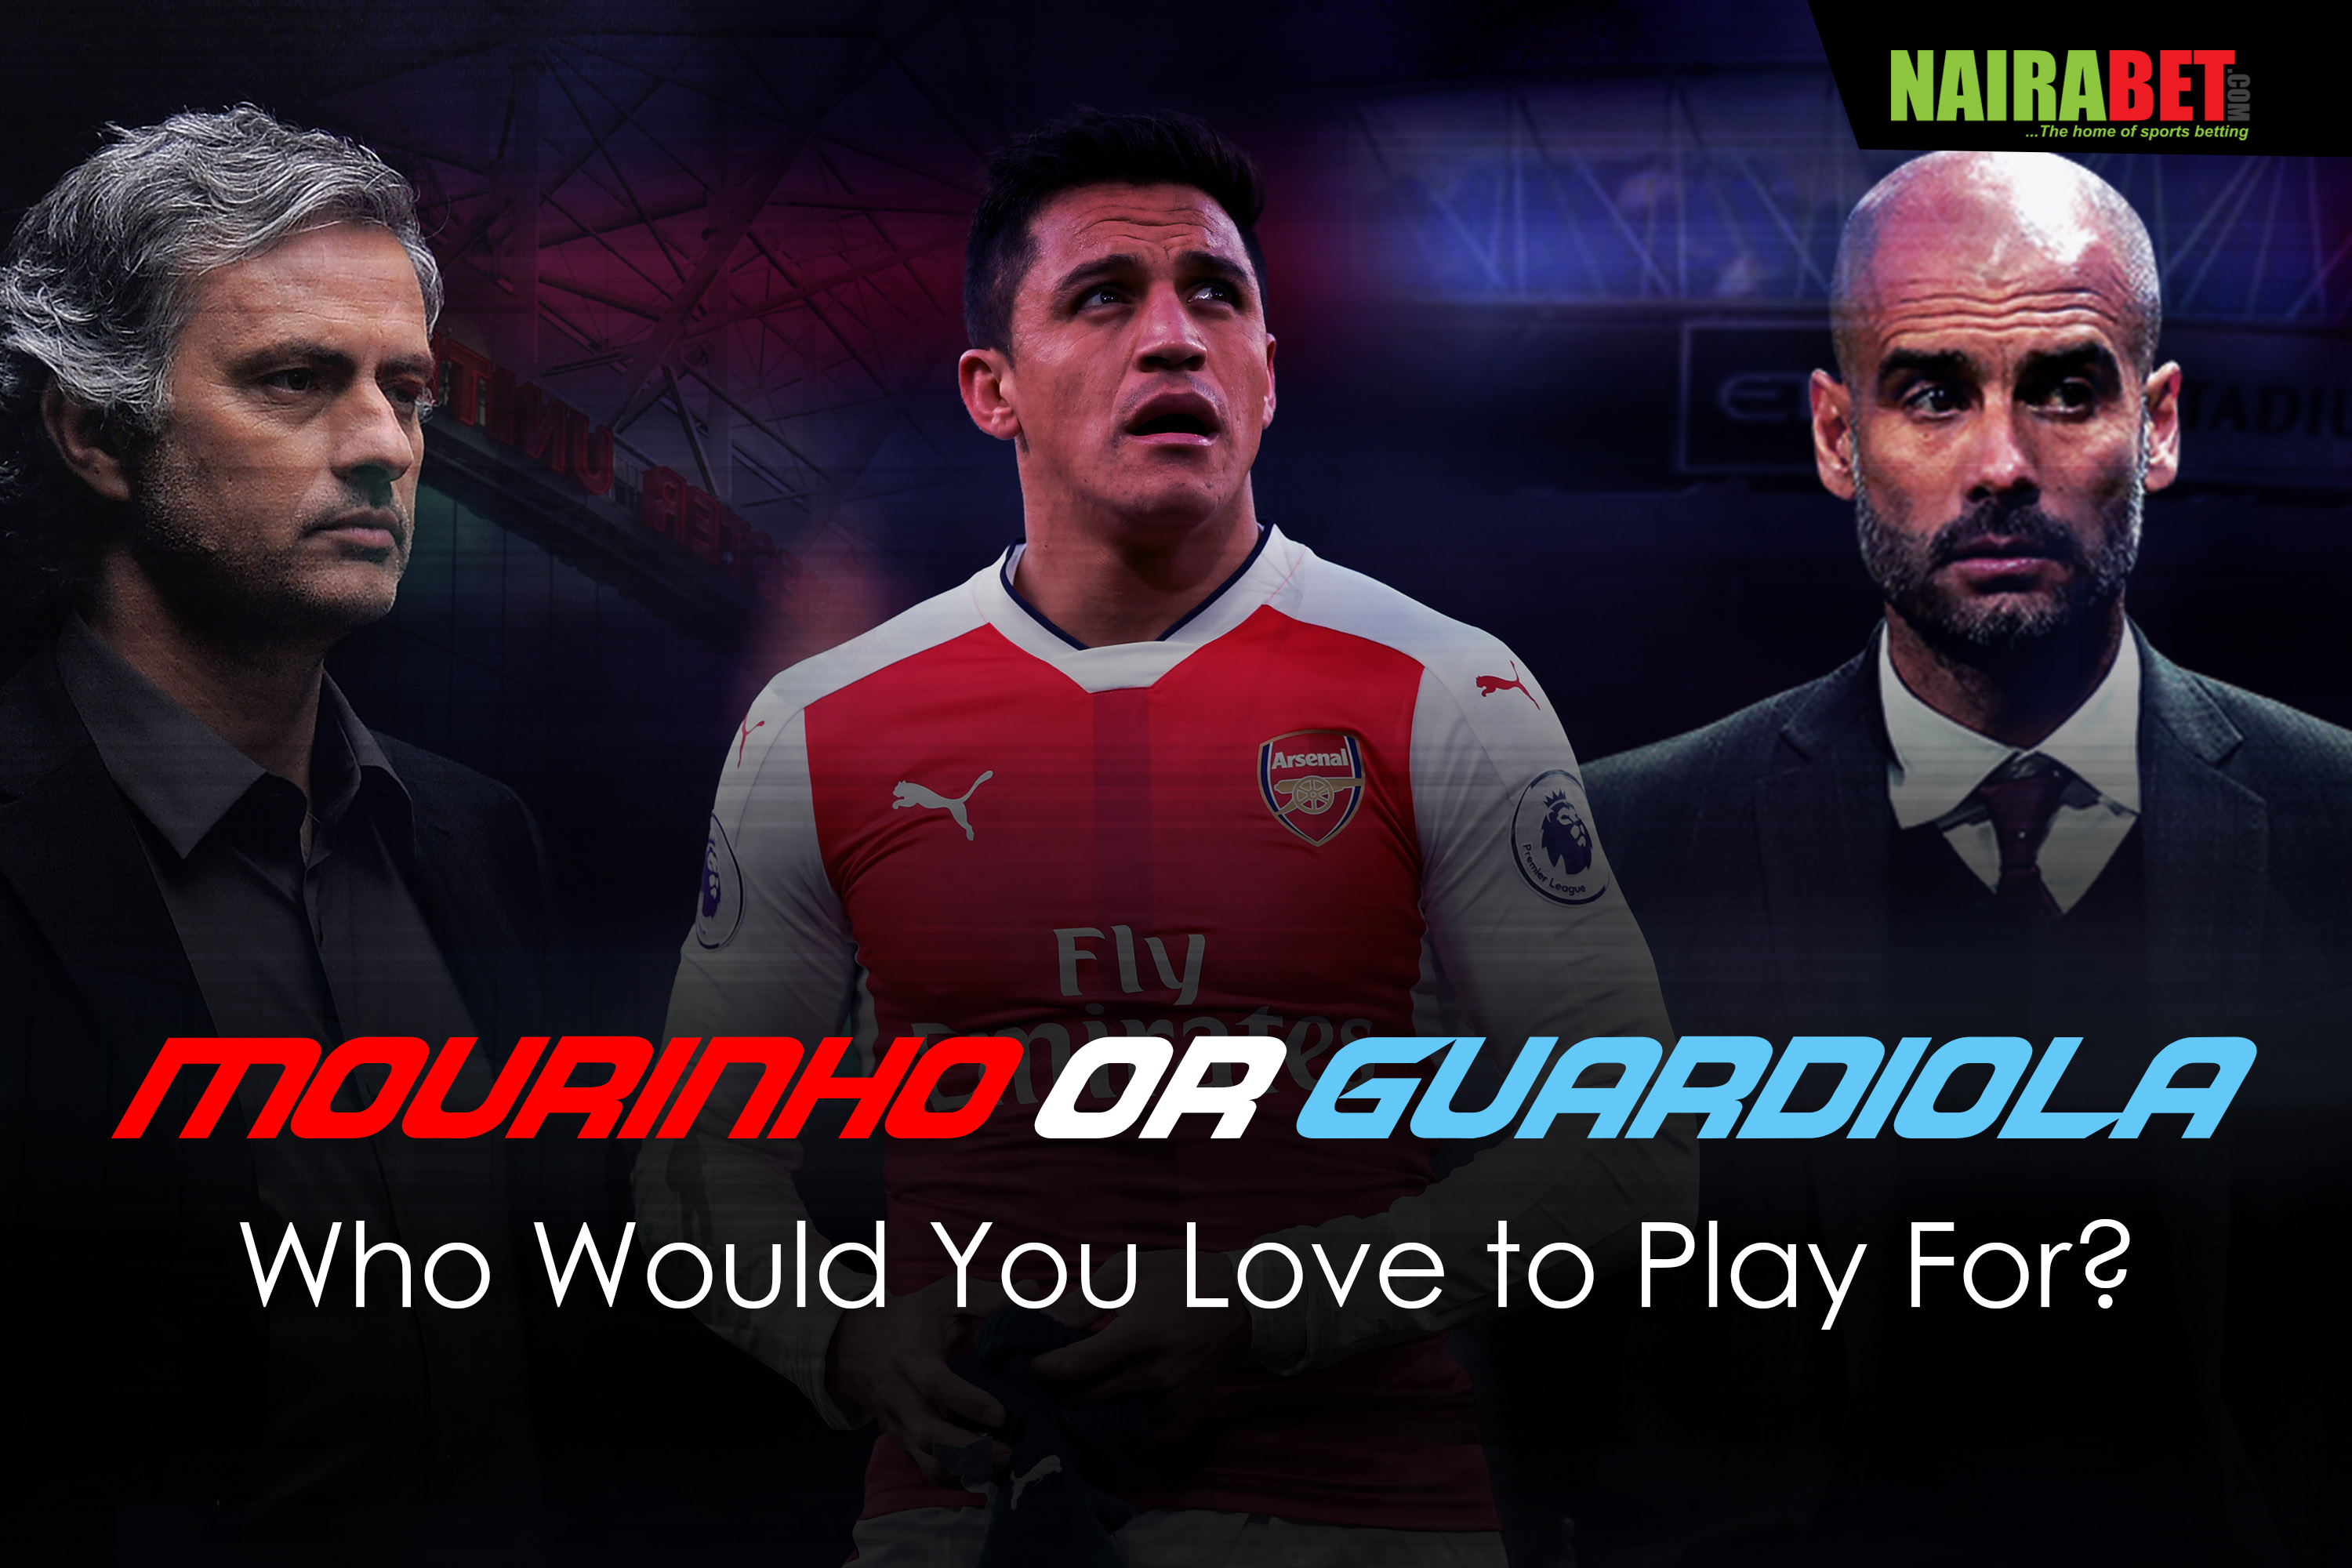 Mourinho or Guardiola